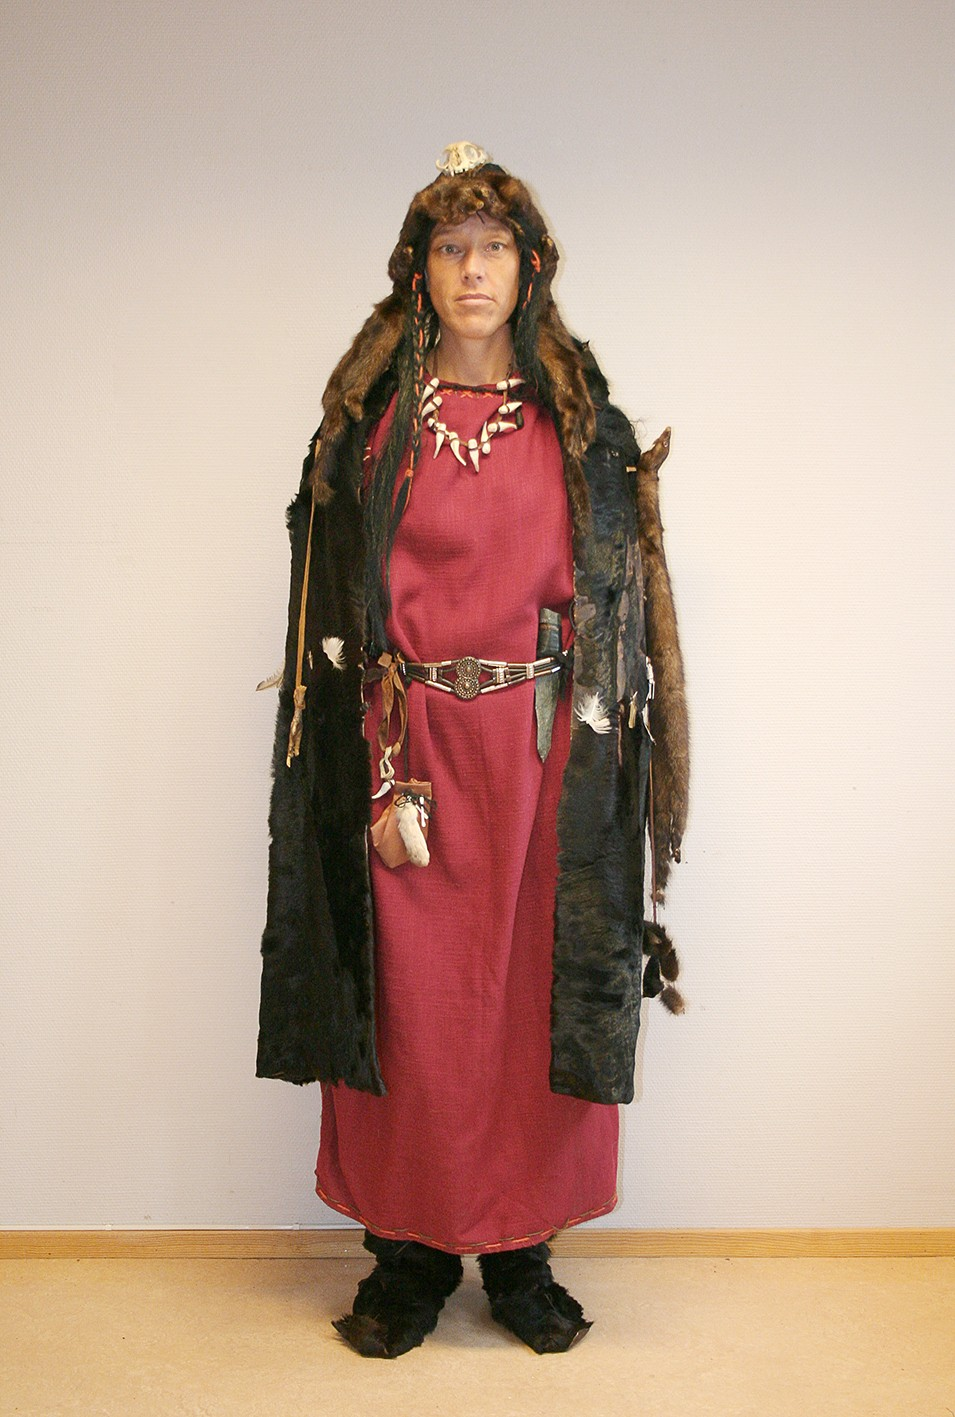 The Seeress woman in a long red Bronze Age dress, fur cape and decorated headpiece